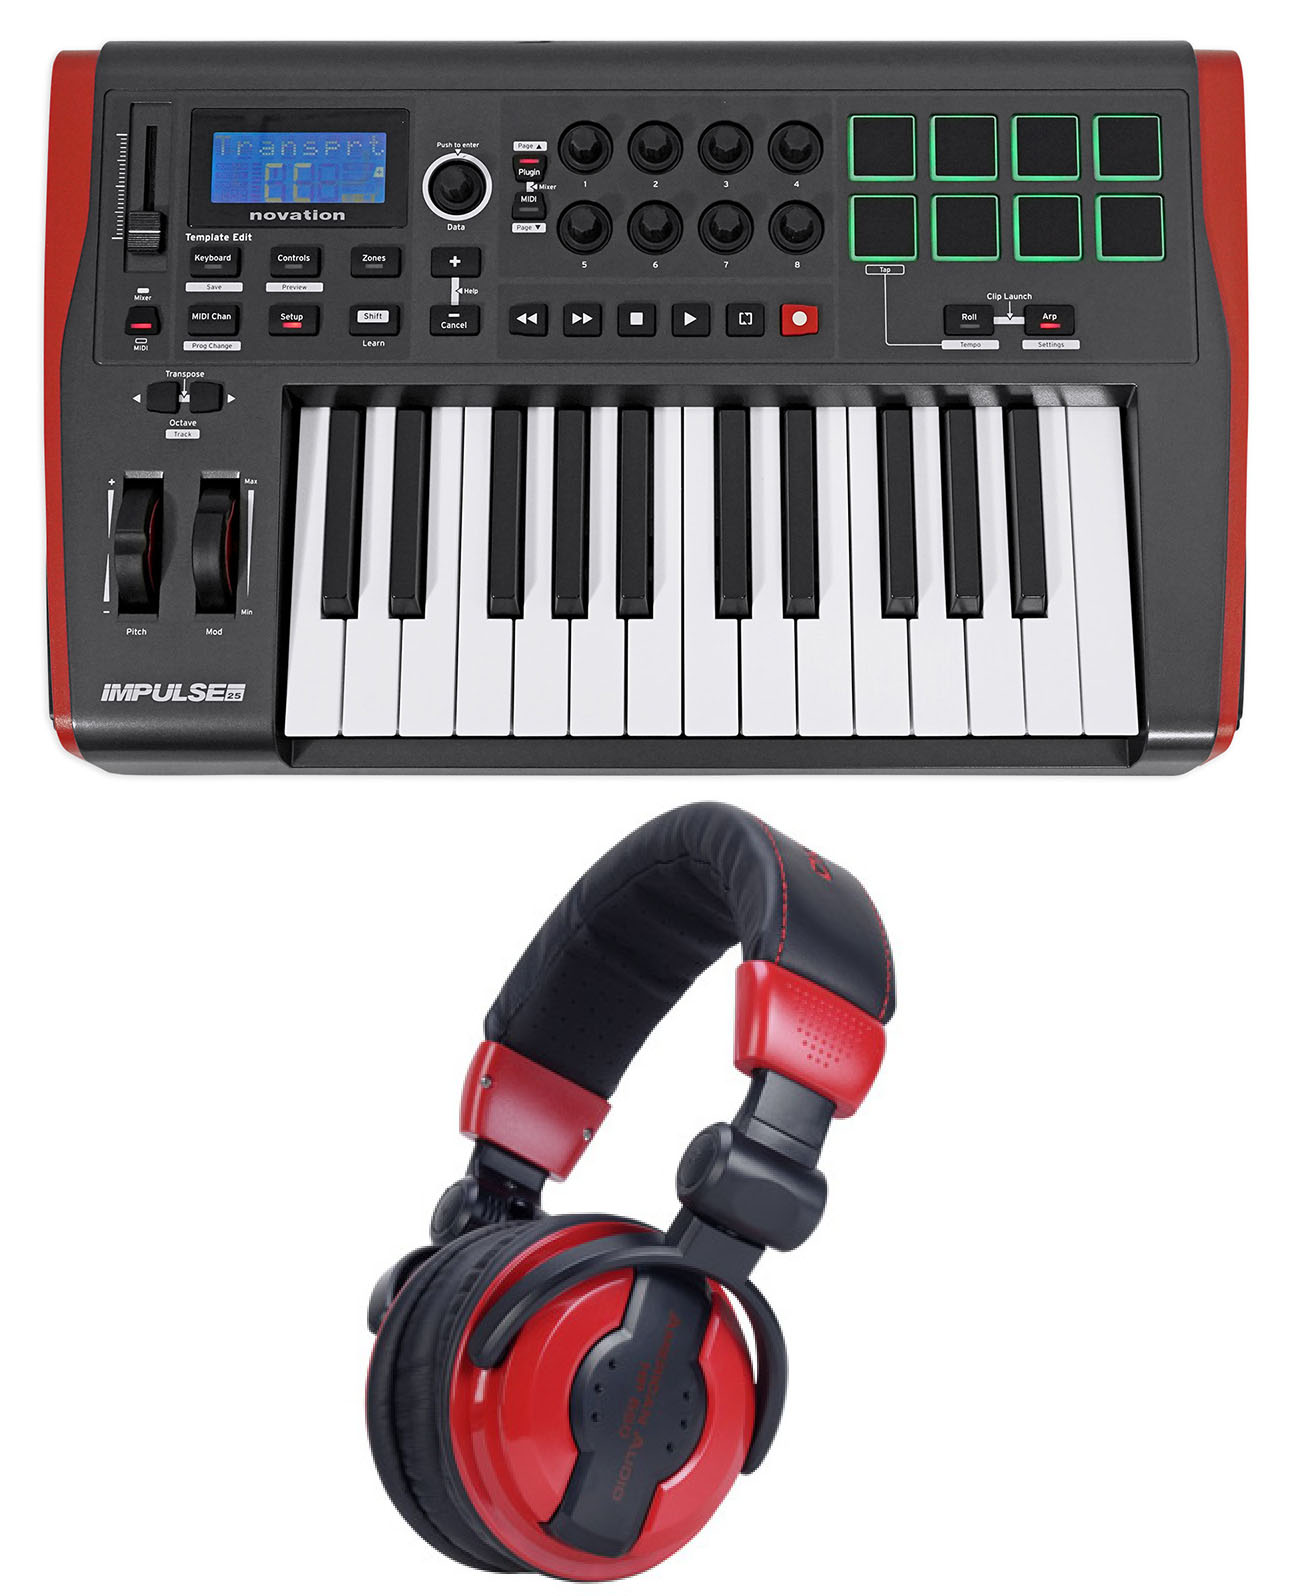 Novation IMPULSE 25 Ableton Live 25-Key MIDI USB Keyboard Controller+Headphones by NOVATION